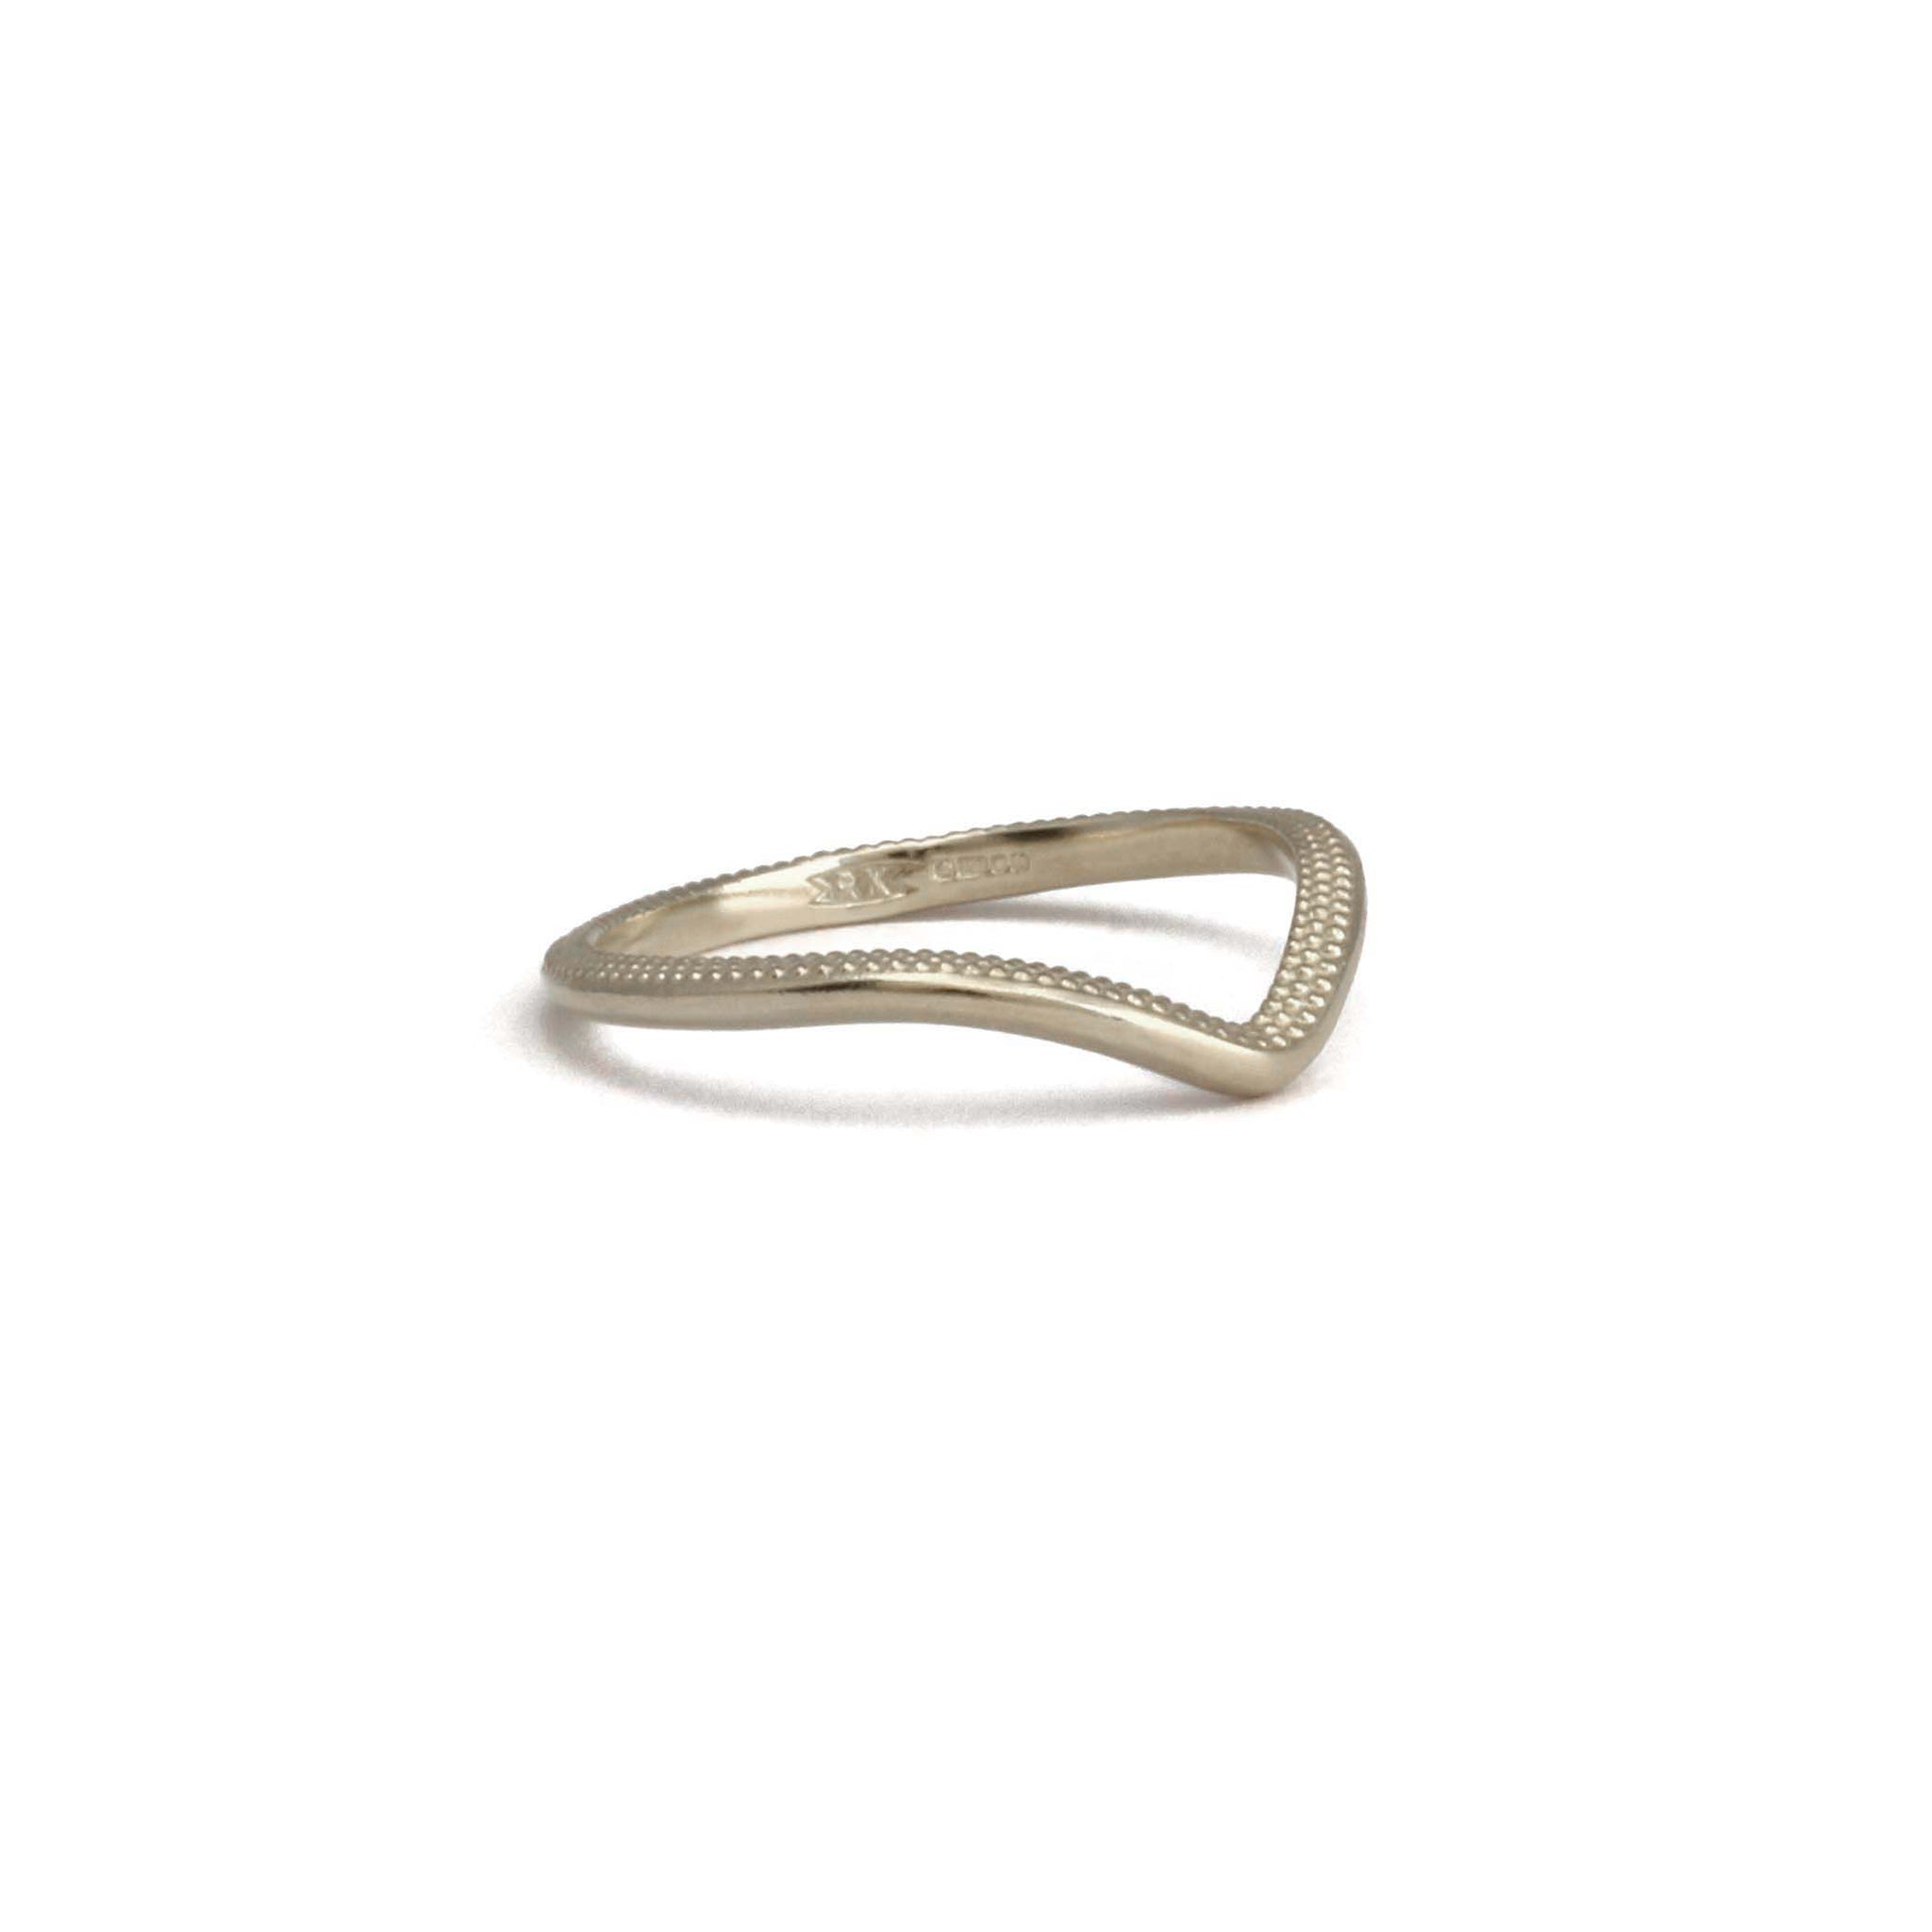 1.8mm Tyro Fade Wishbone Band 18ct gold